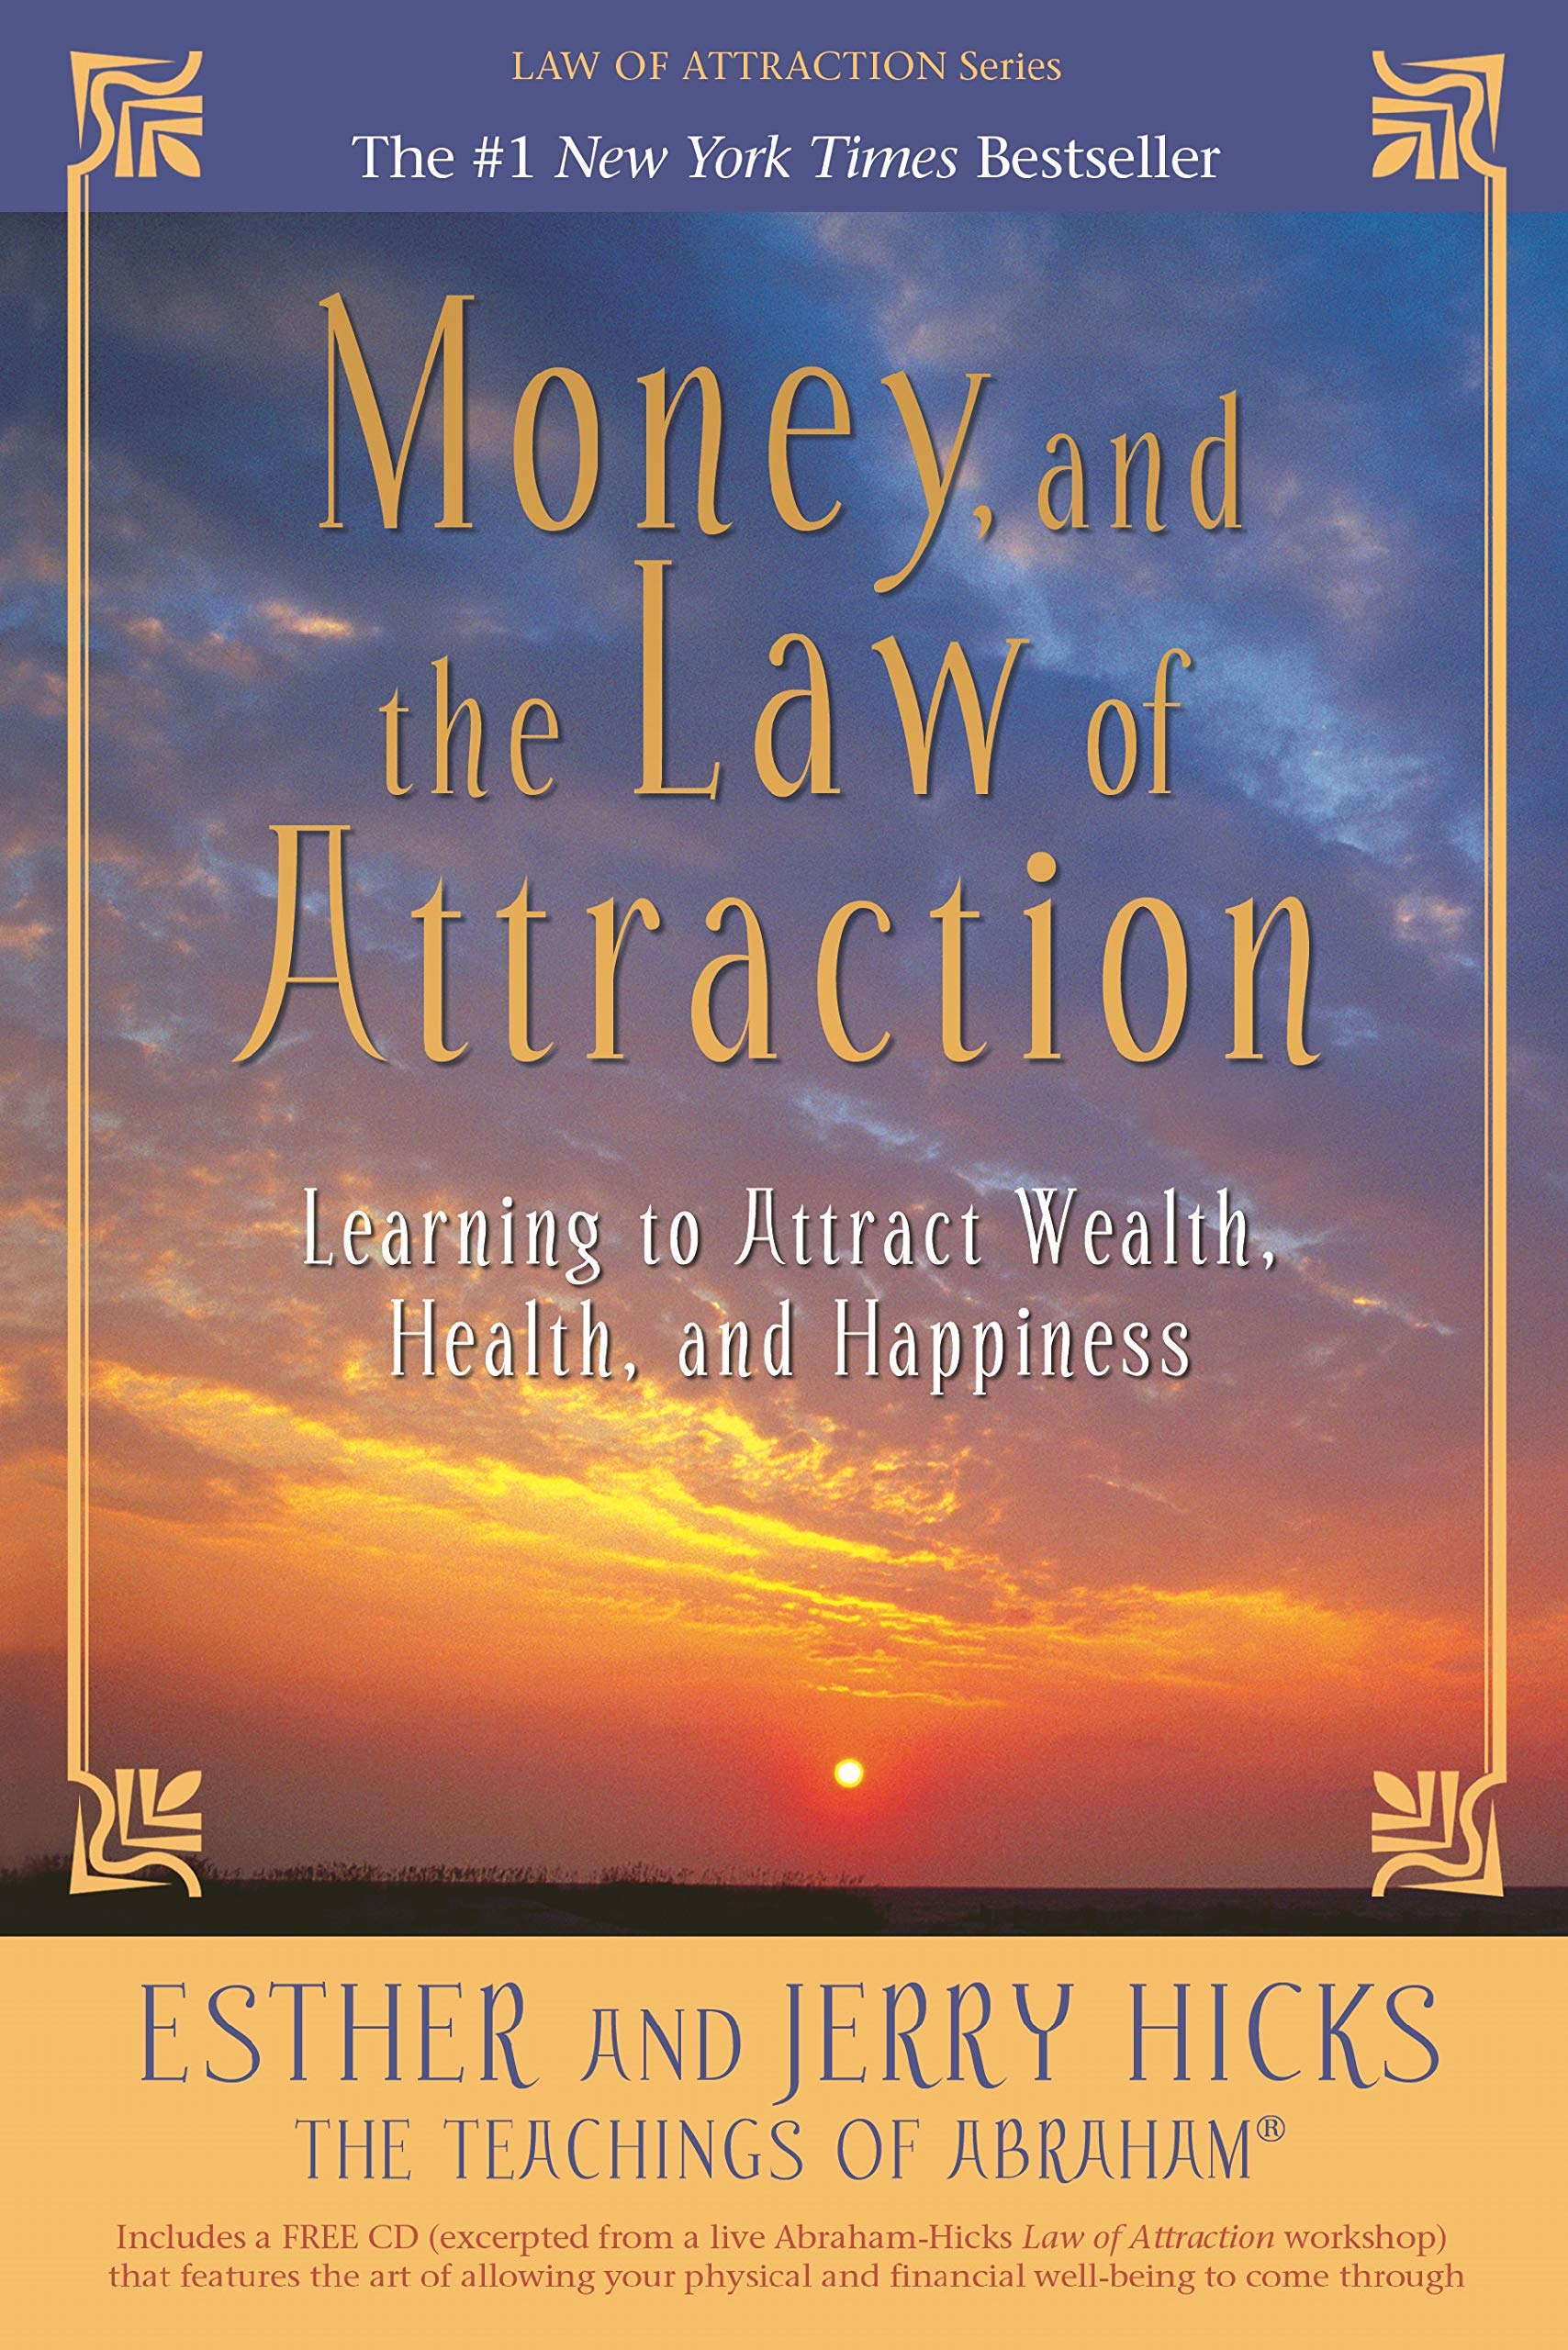 Money, and the Law of Attraction: Learning to Attract Wealth, Health, and  Happiness: Esther Hicks, Jerry Hicks: 9781401918811: Amazon.com: Books